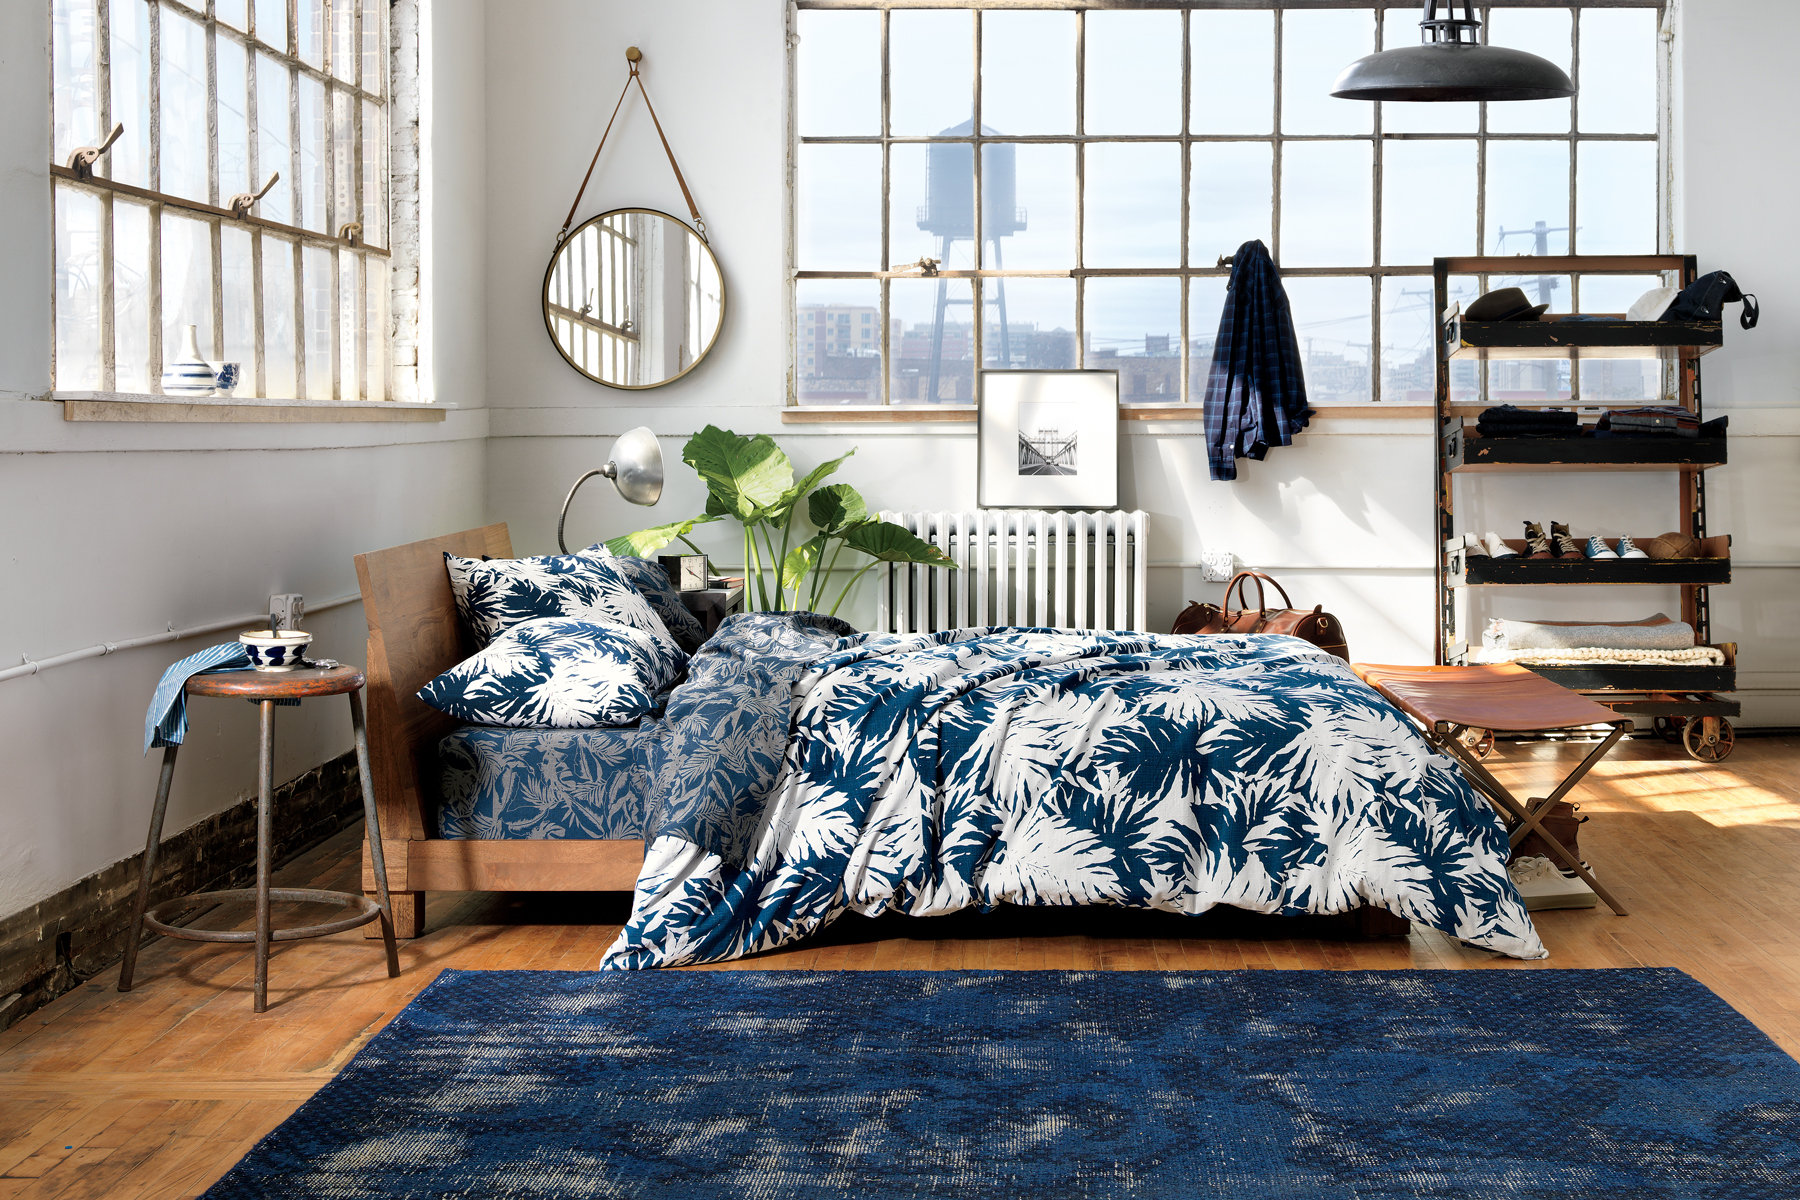 CB2 x The Hill-Side Launch a Modern Homewares Collection